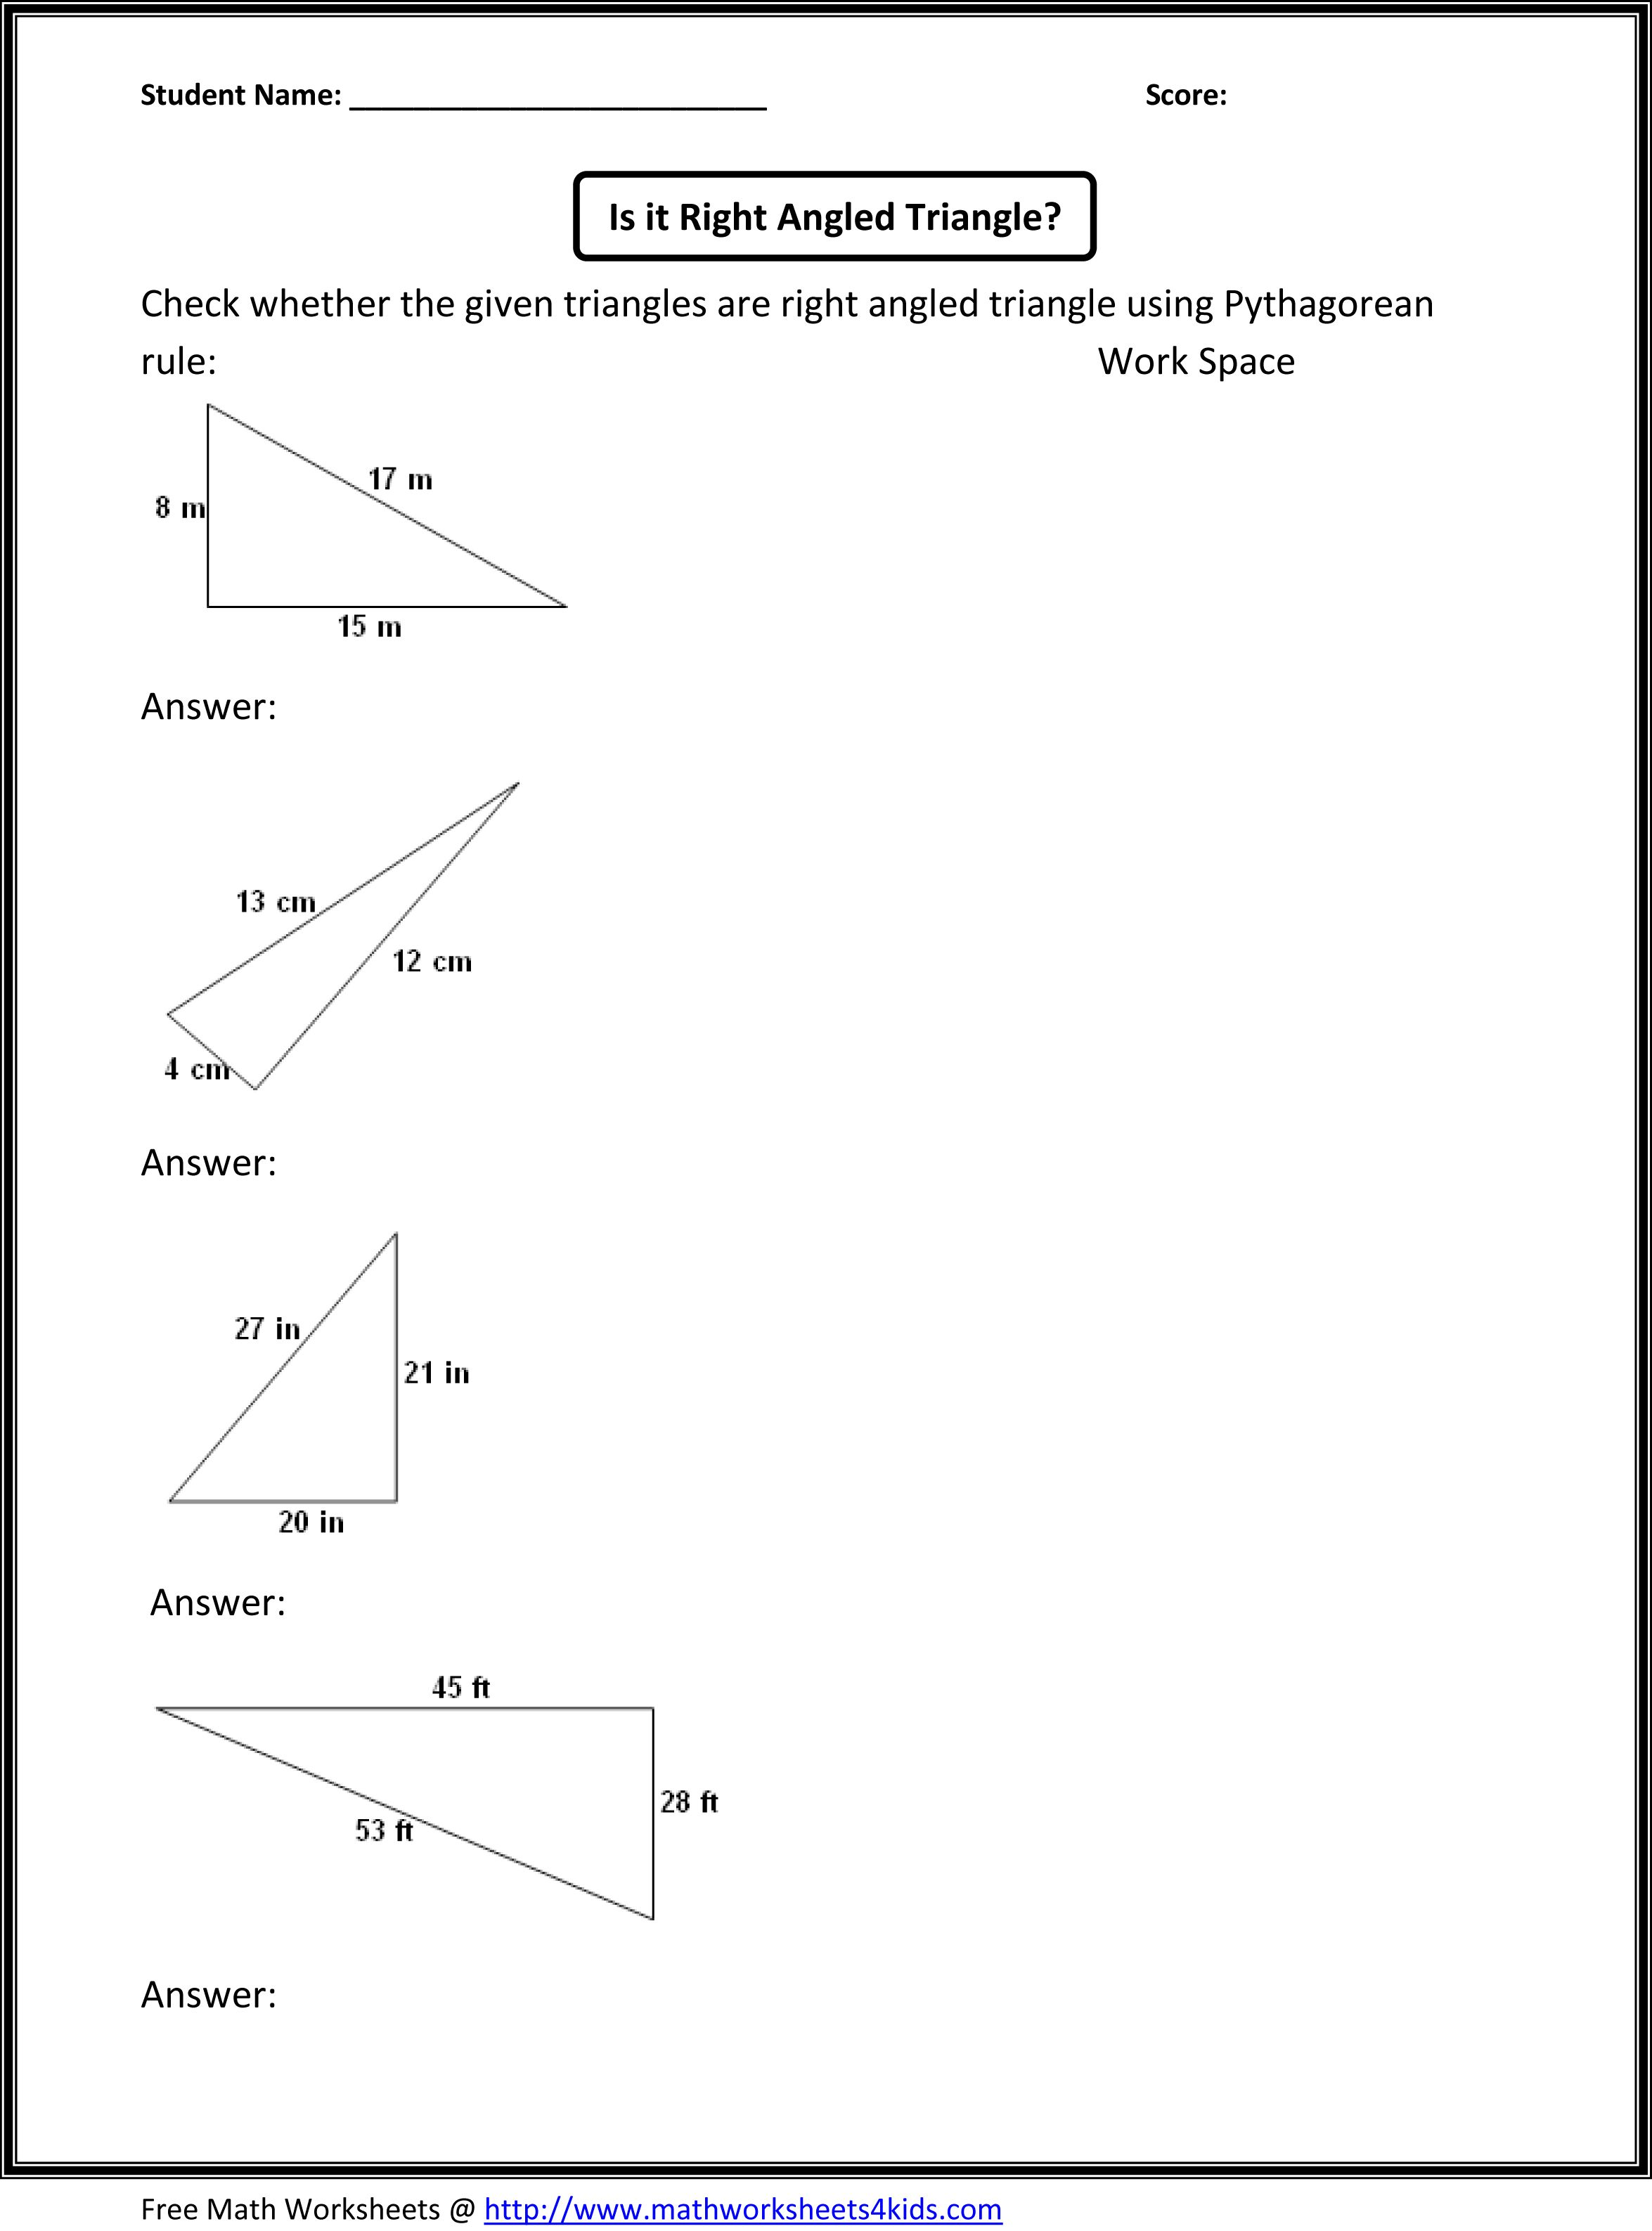 Printables Math Worksheets For 8th Graders With Answers pythagorean theorem worksheet 8th grade syndeomedia 1000 images about on pinterest activities grade